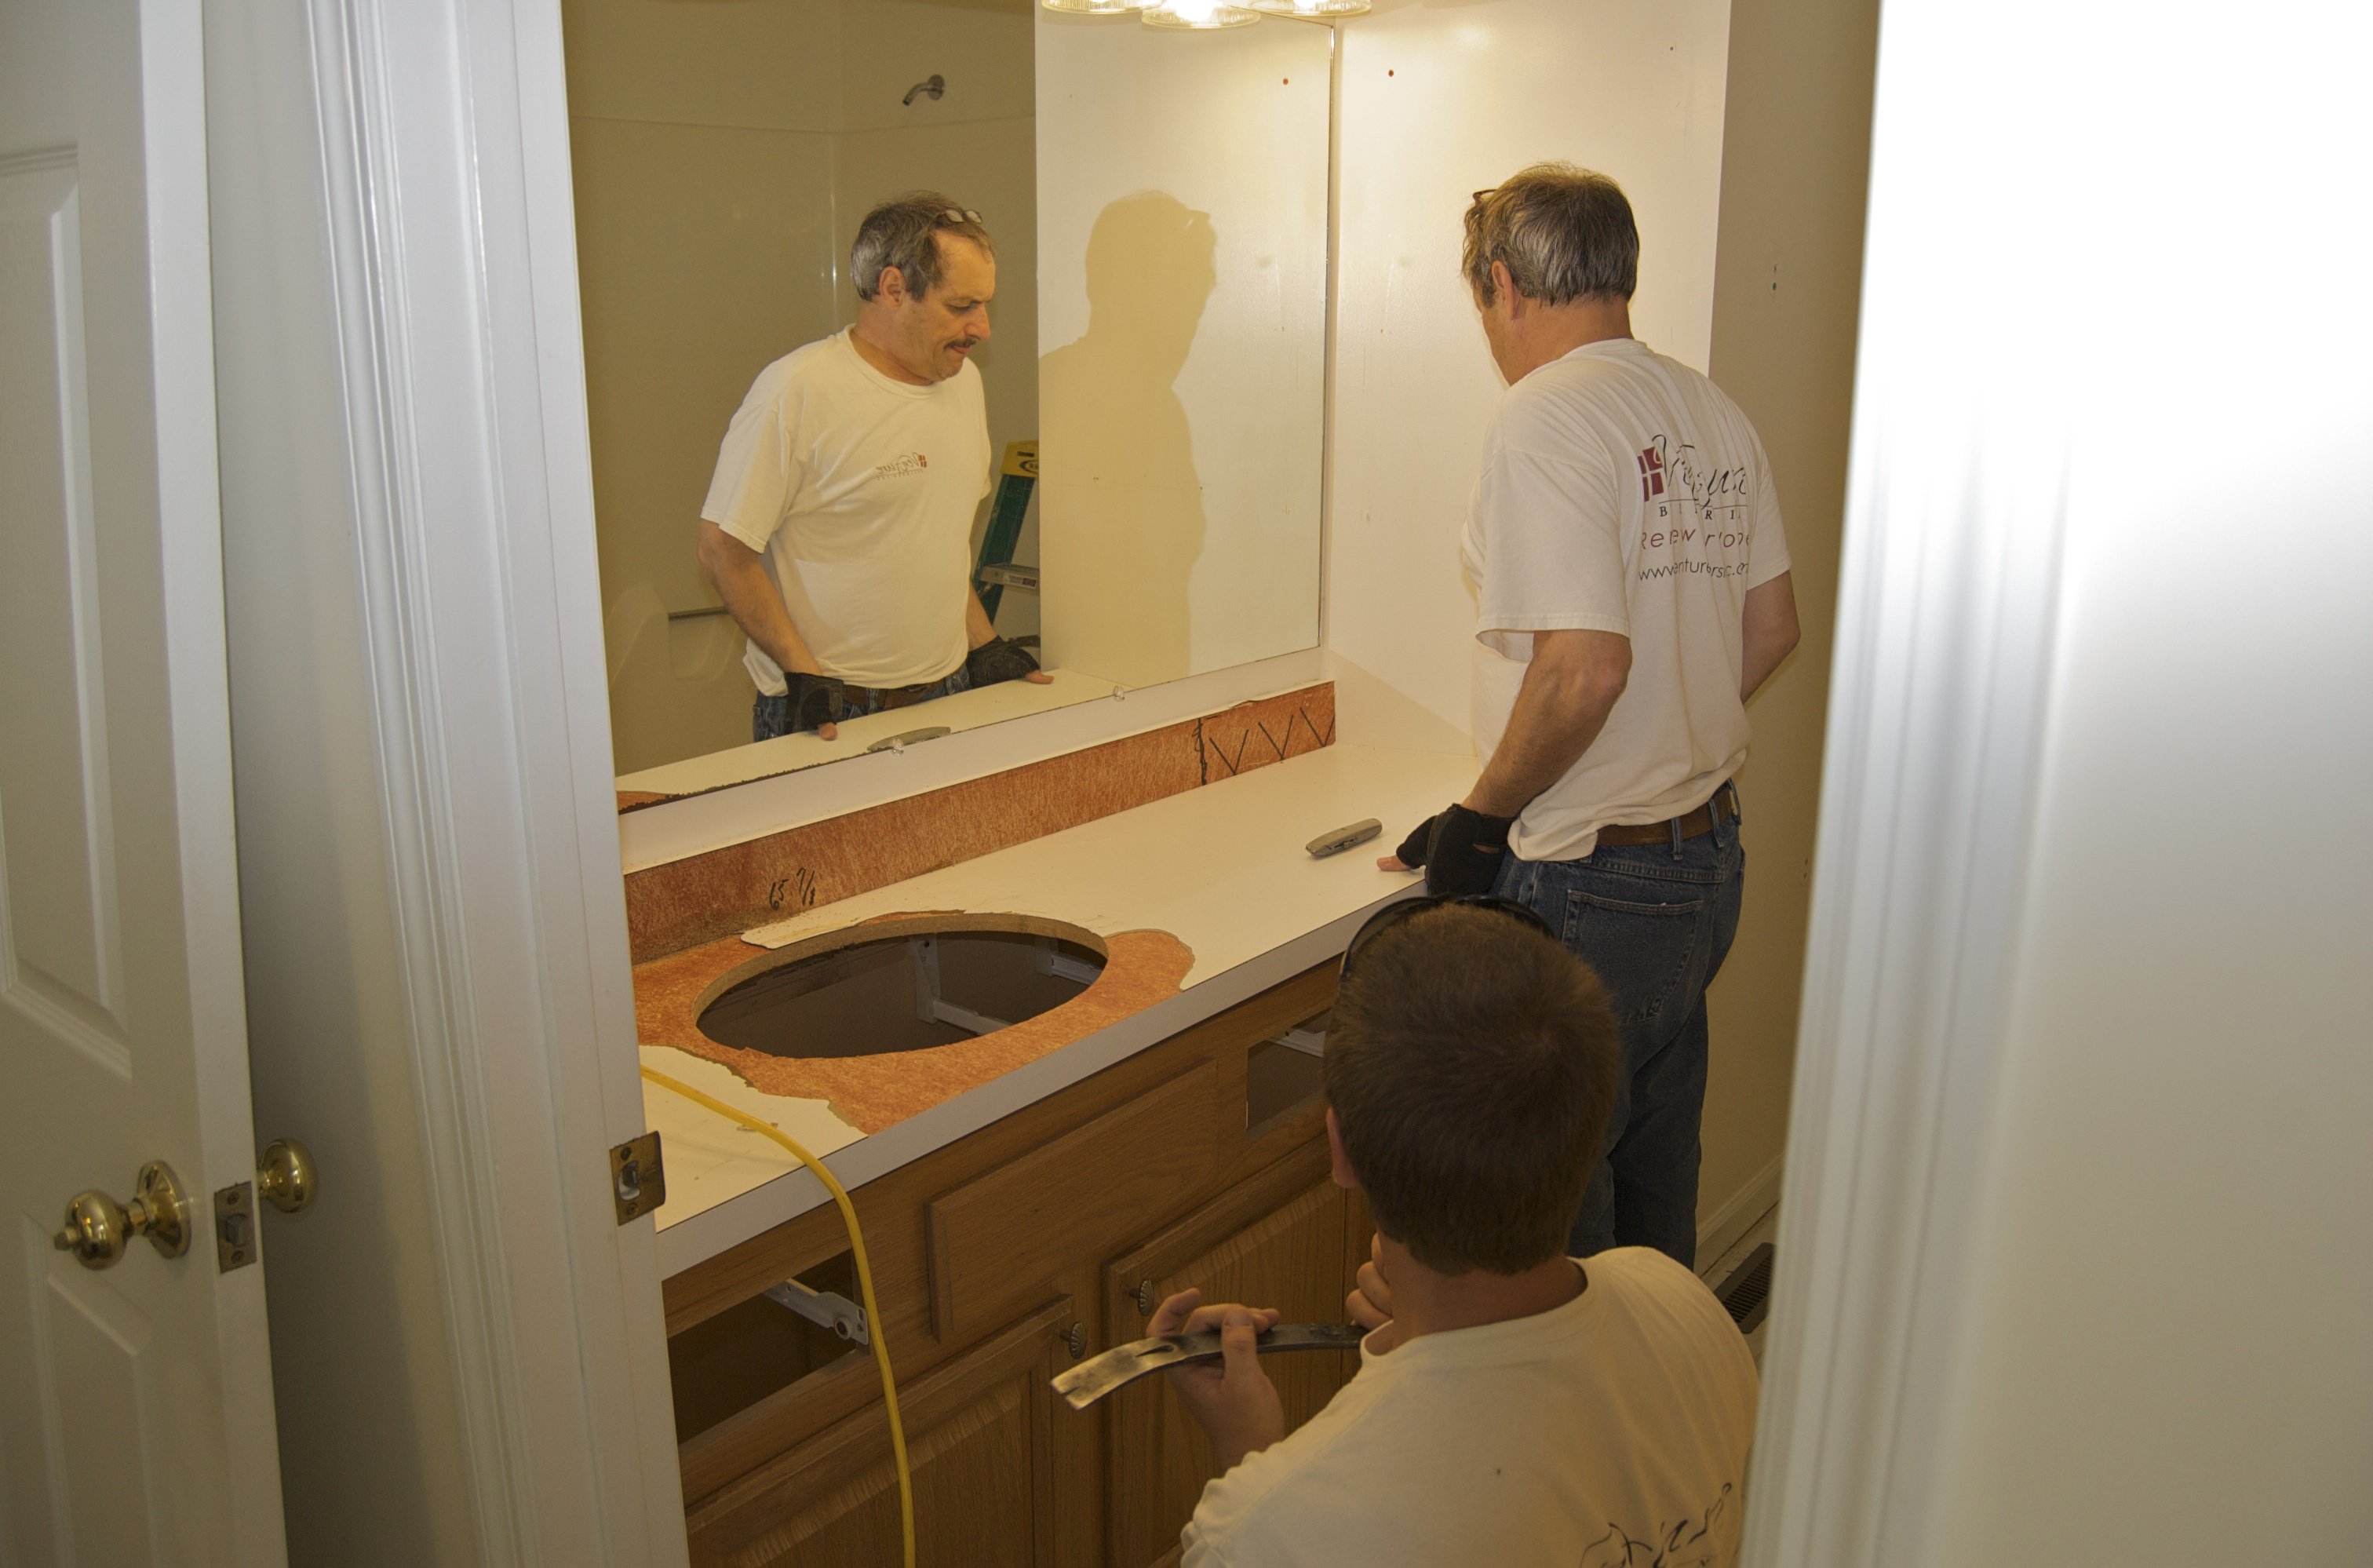 home remodel addittions remodeling remodelbaltimore baltimore bathroom howard co contractor